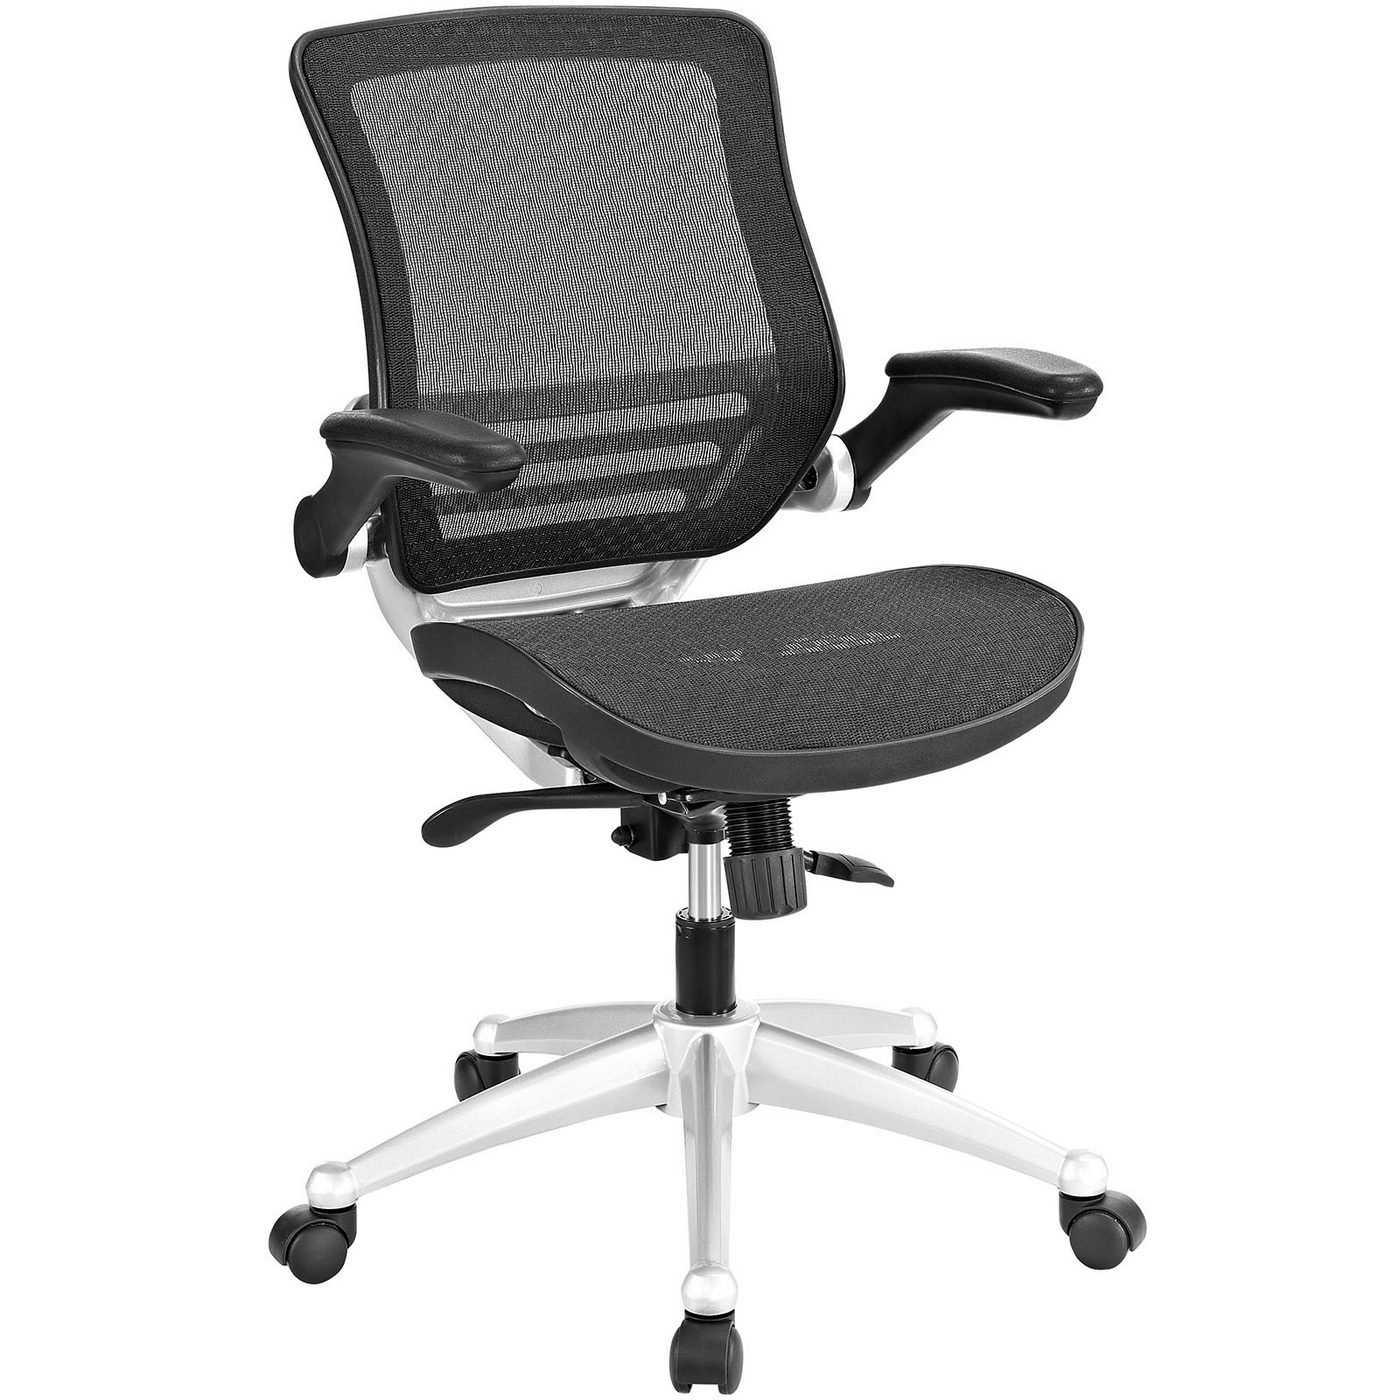 Edge Modern Ergonomic Mesh Office Chair W Padded Vinyl Armrests Black